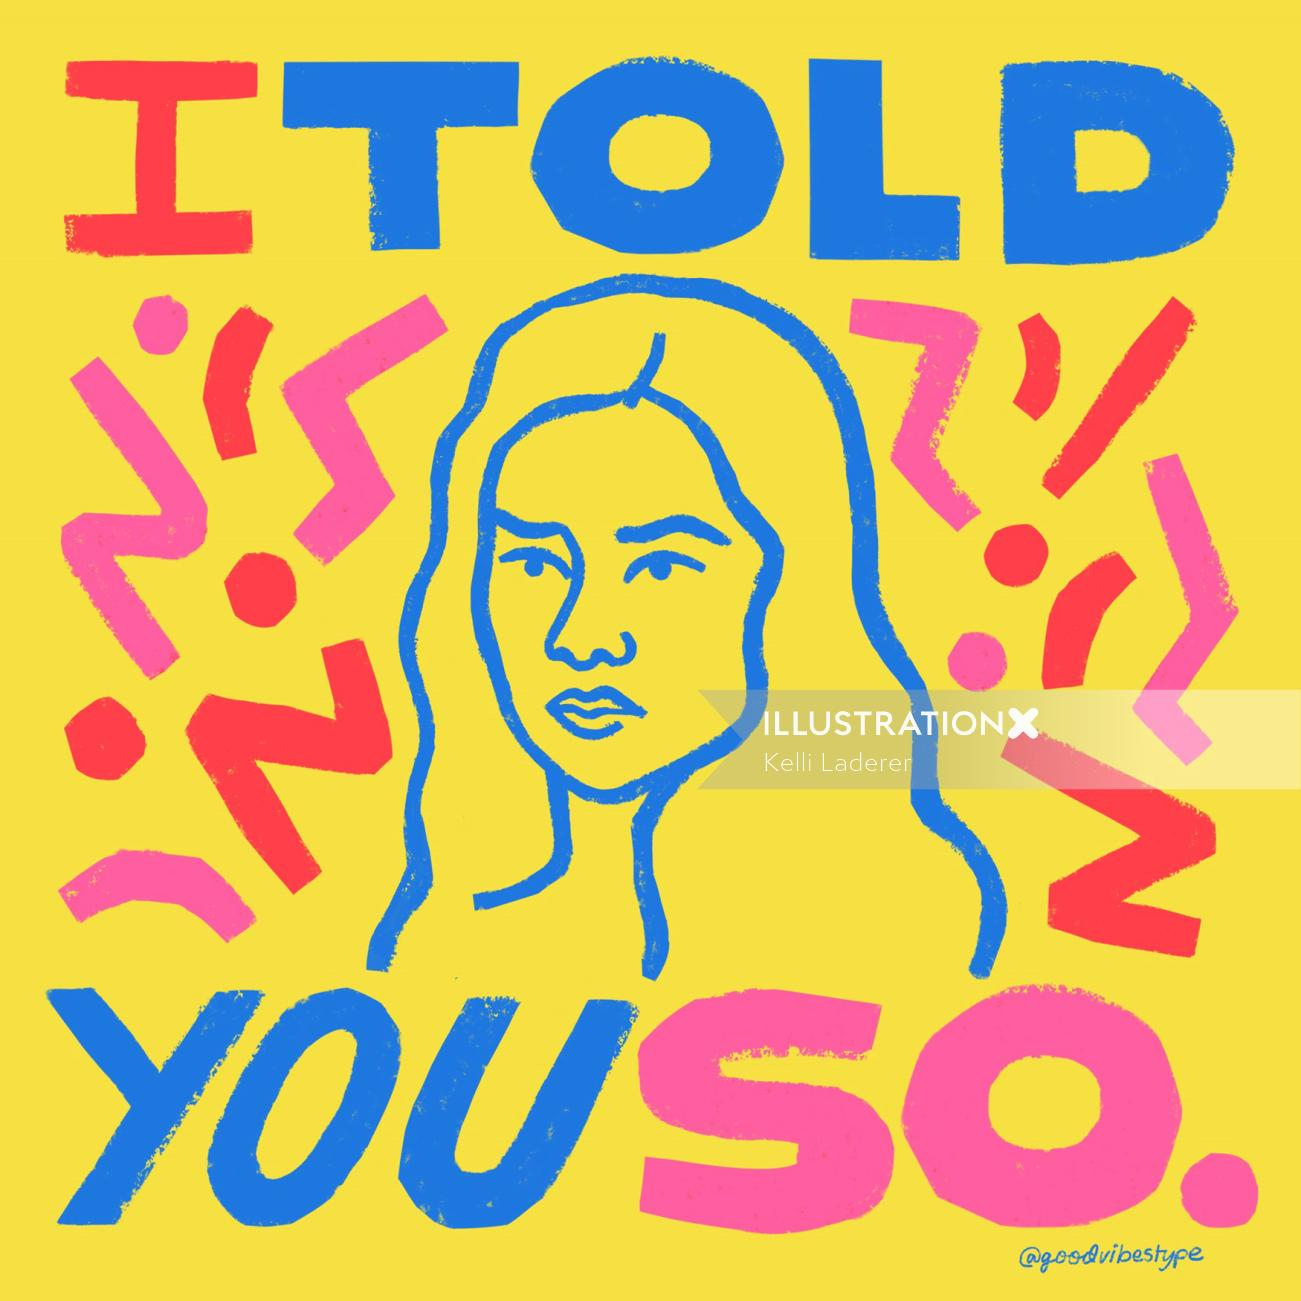 I told you so typography